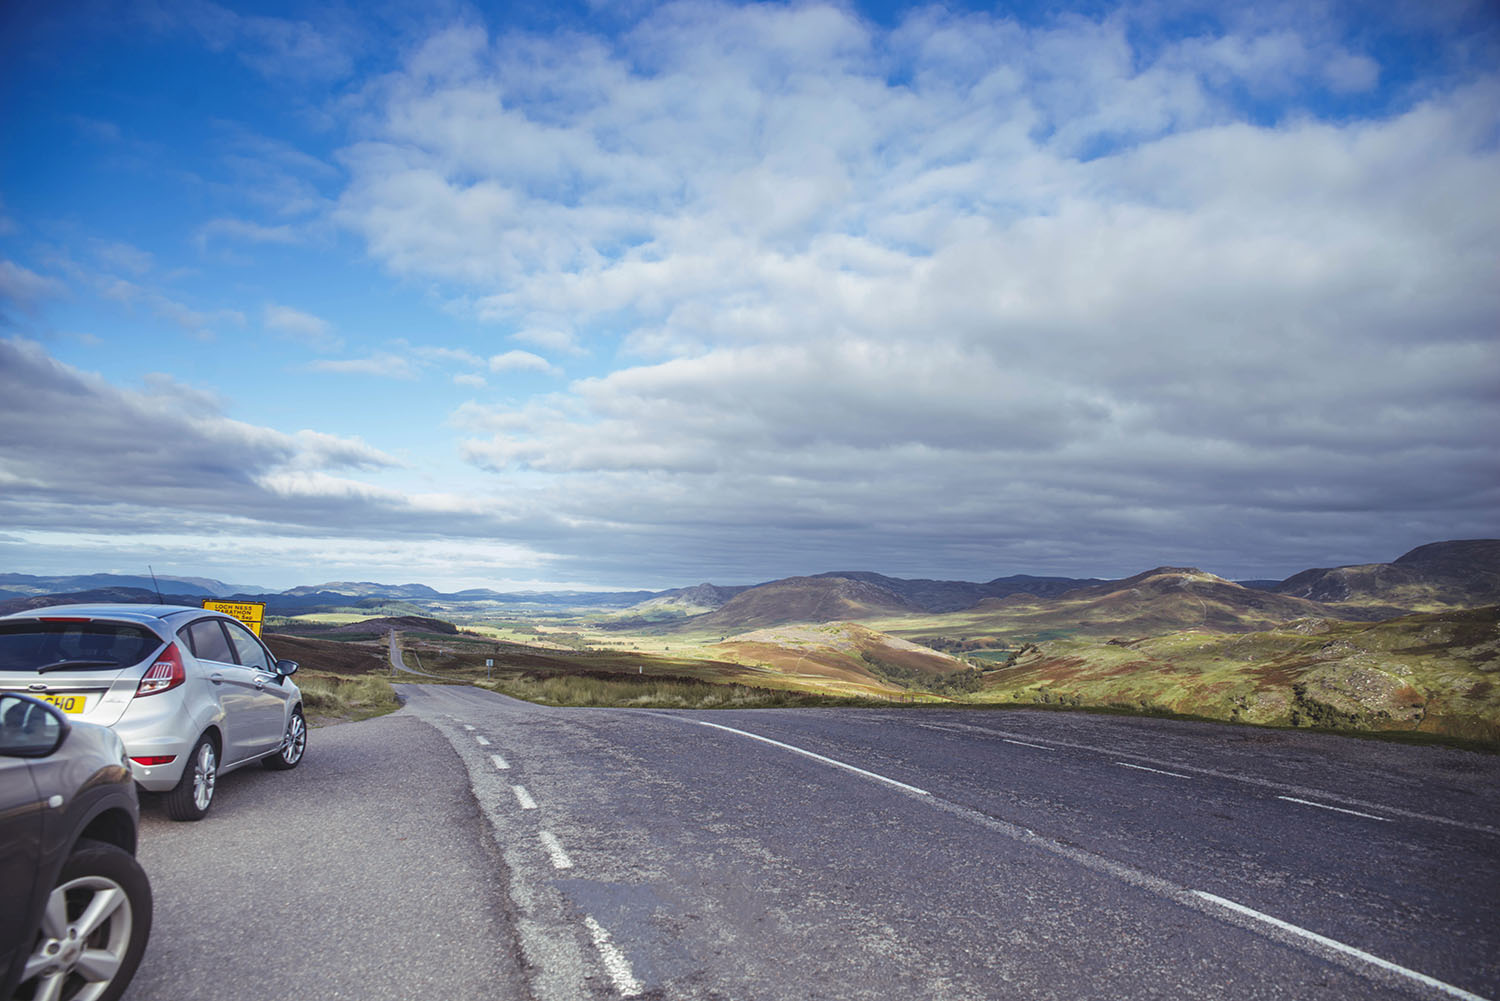 Road trip in Scotland - A stop at Suidhe Viewpoint